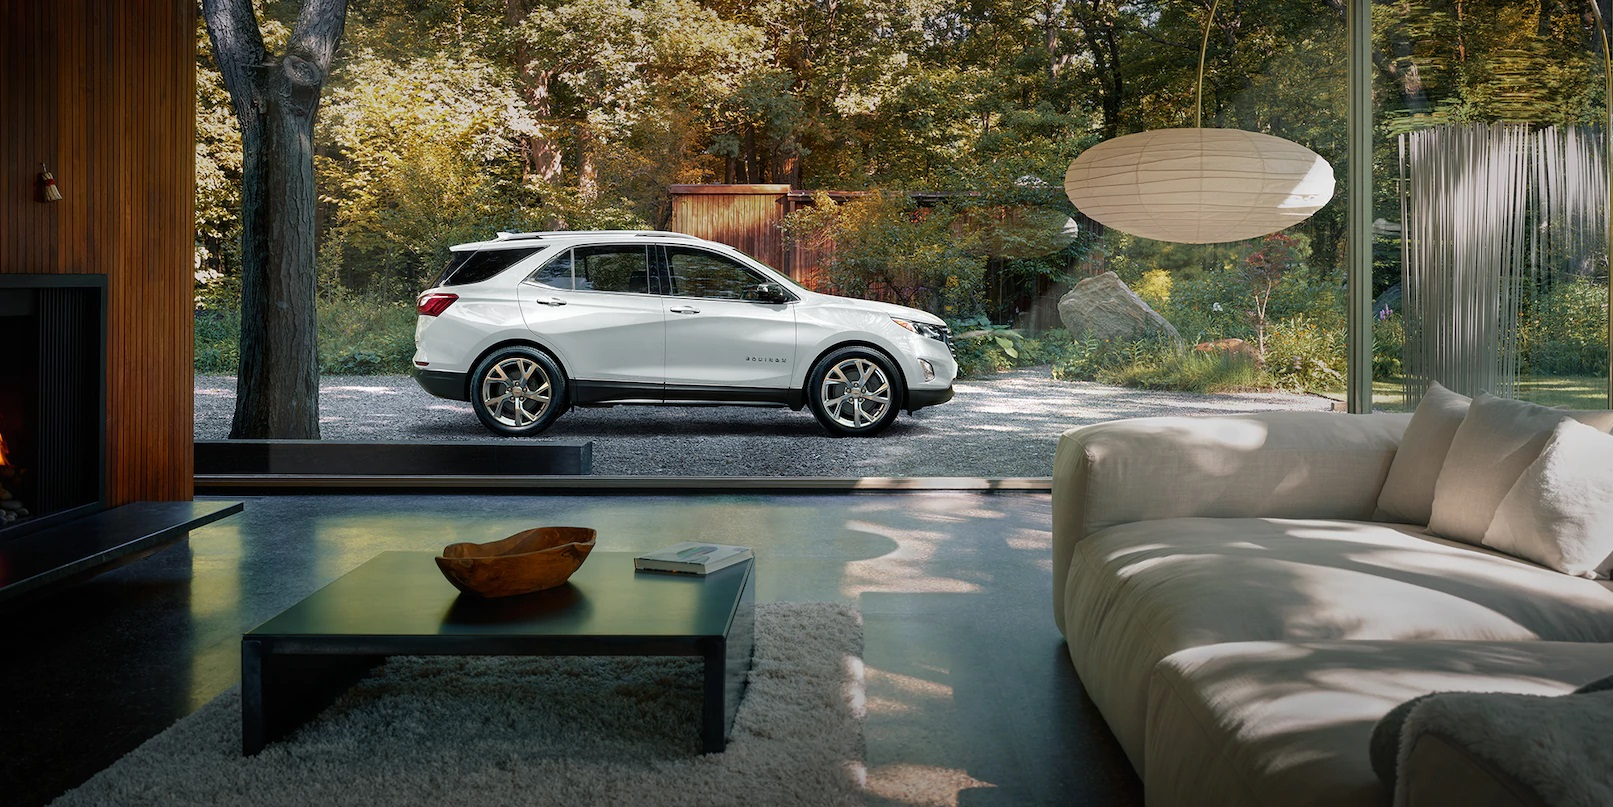 2018 Chevrolet Equinox Financing in Highland, IN